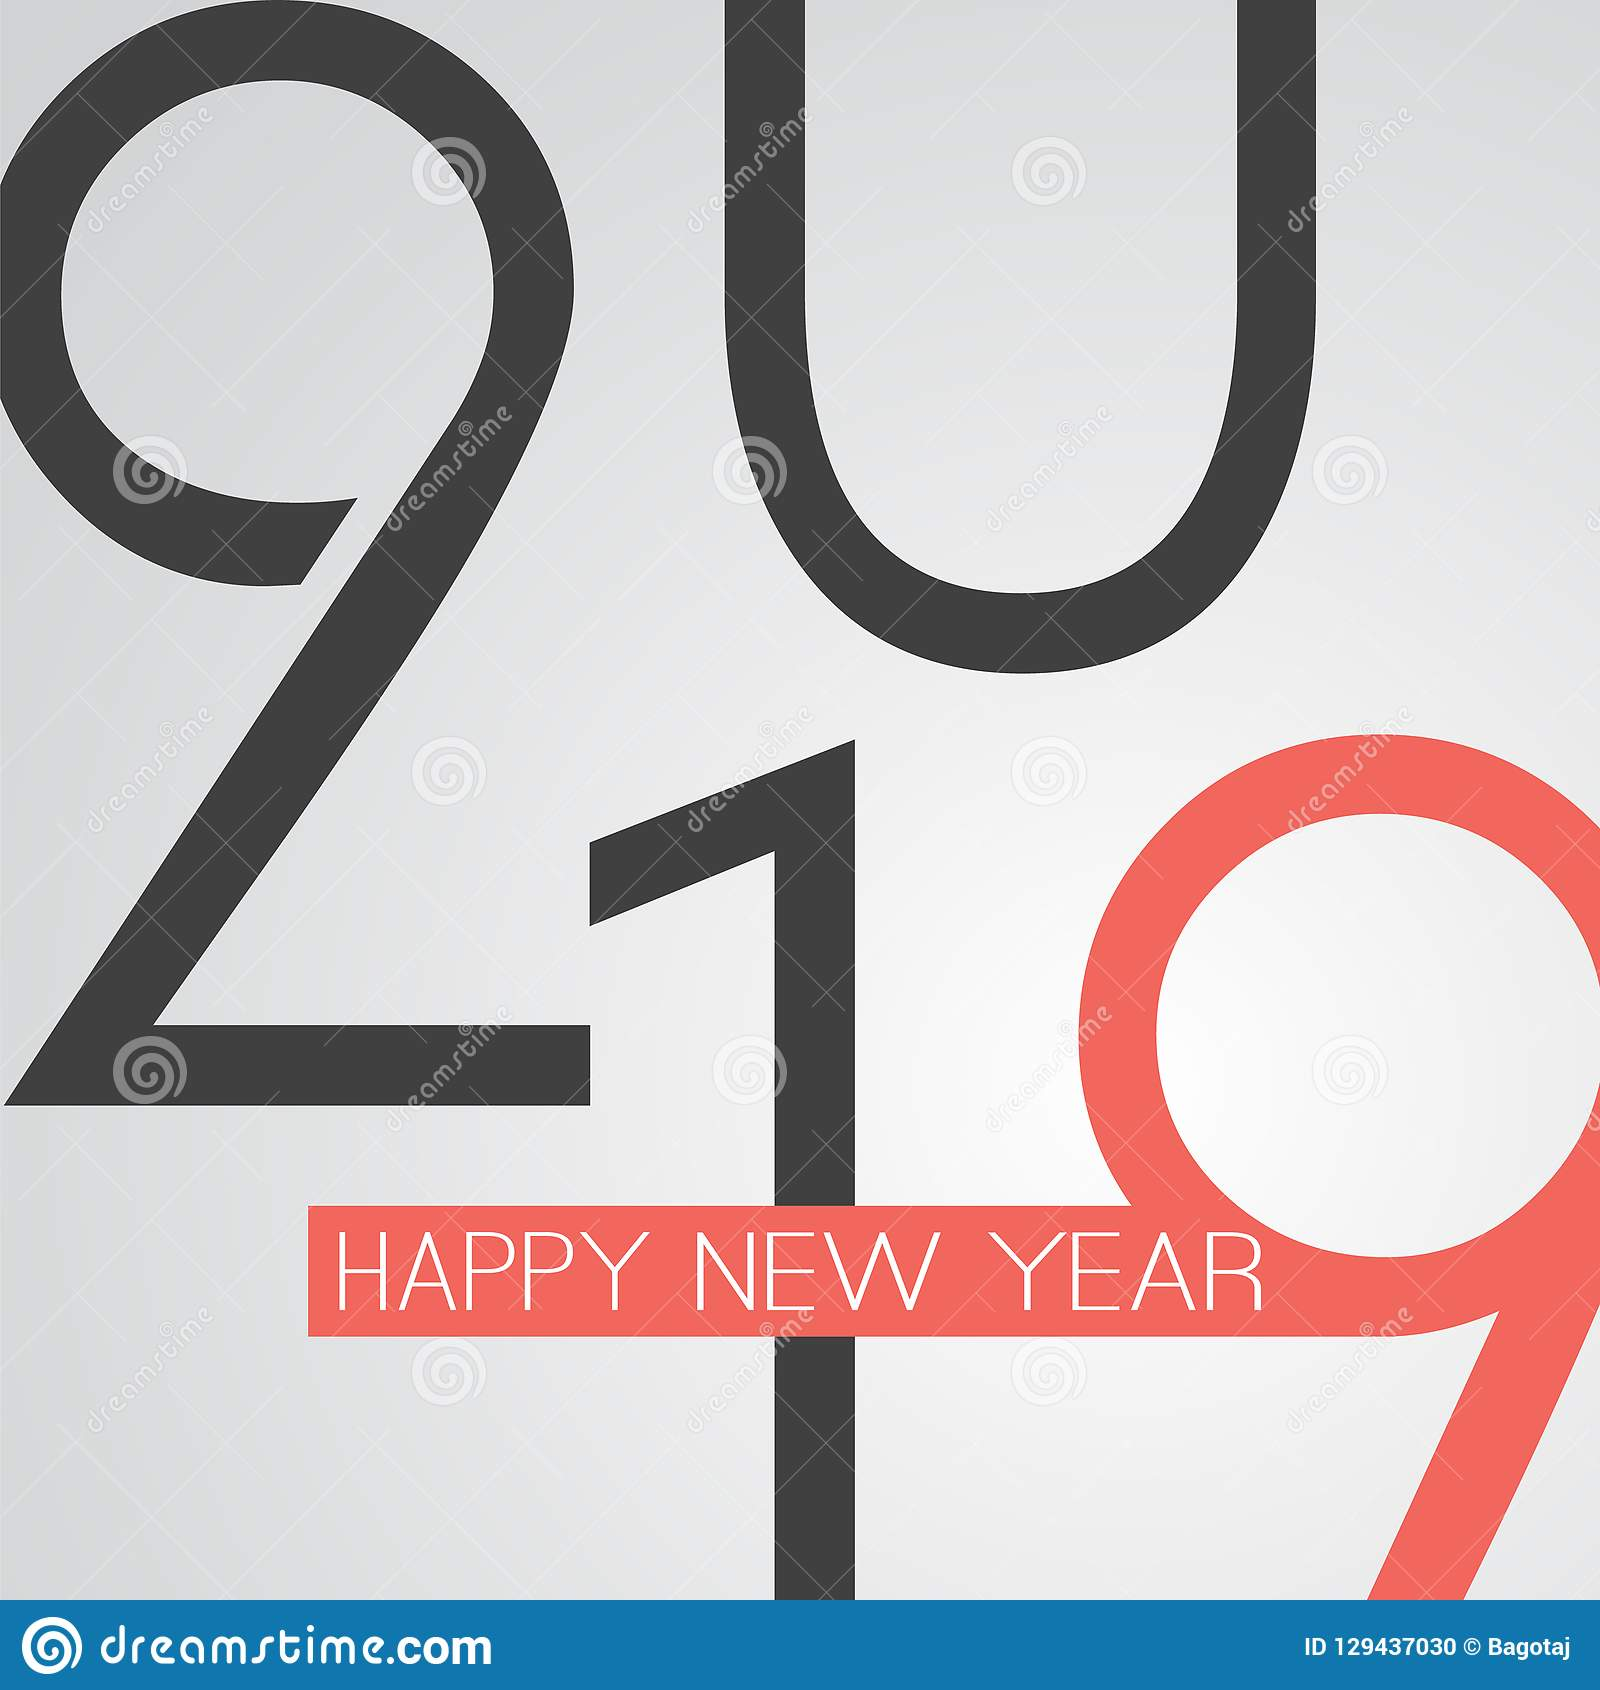 best wishes retro style happy new year greeting card or background creative design template